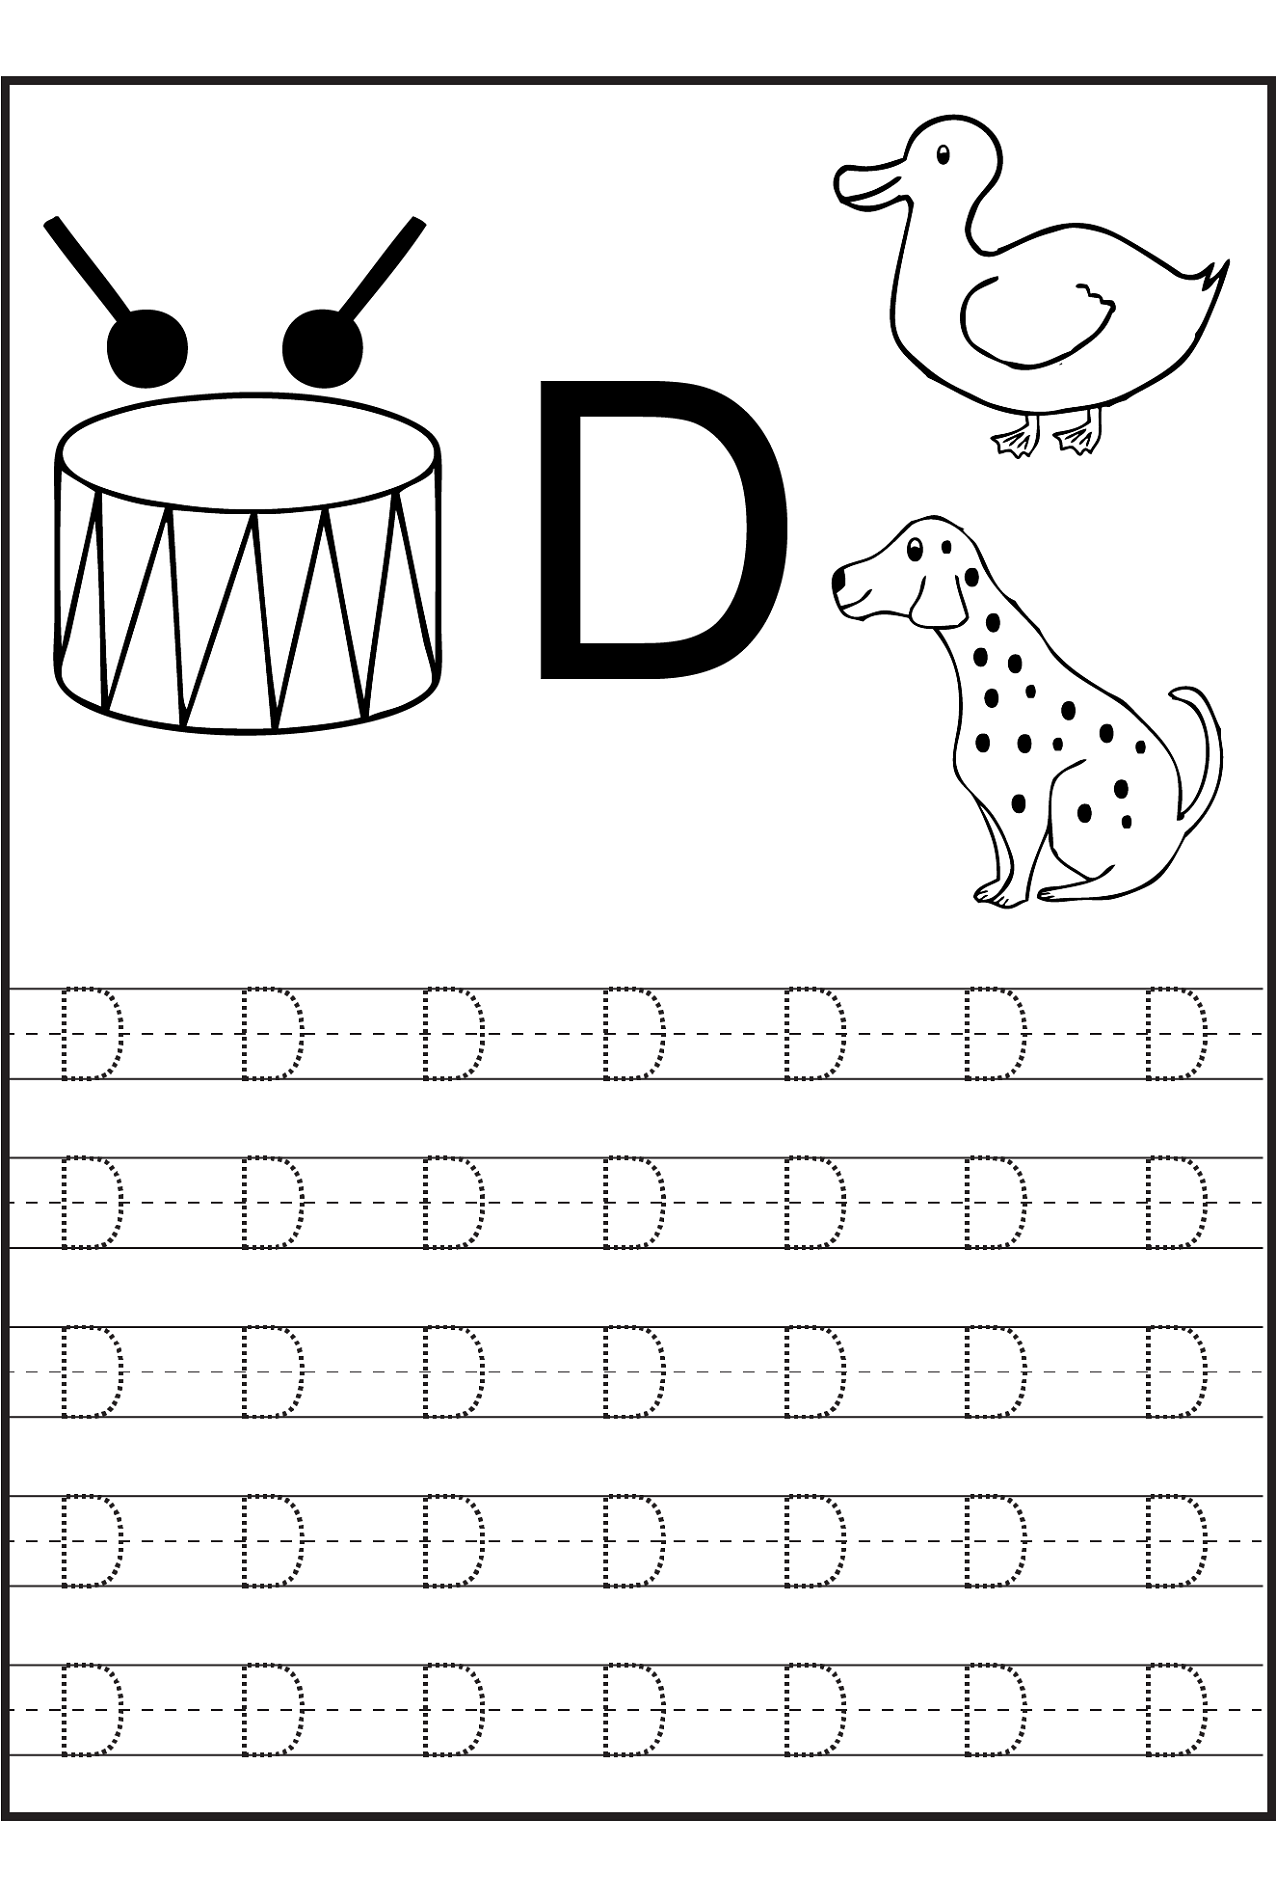 Traceable Letters Worksheet for Children Golden Age Activities